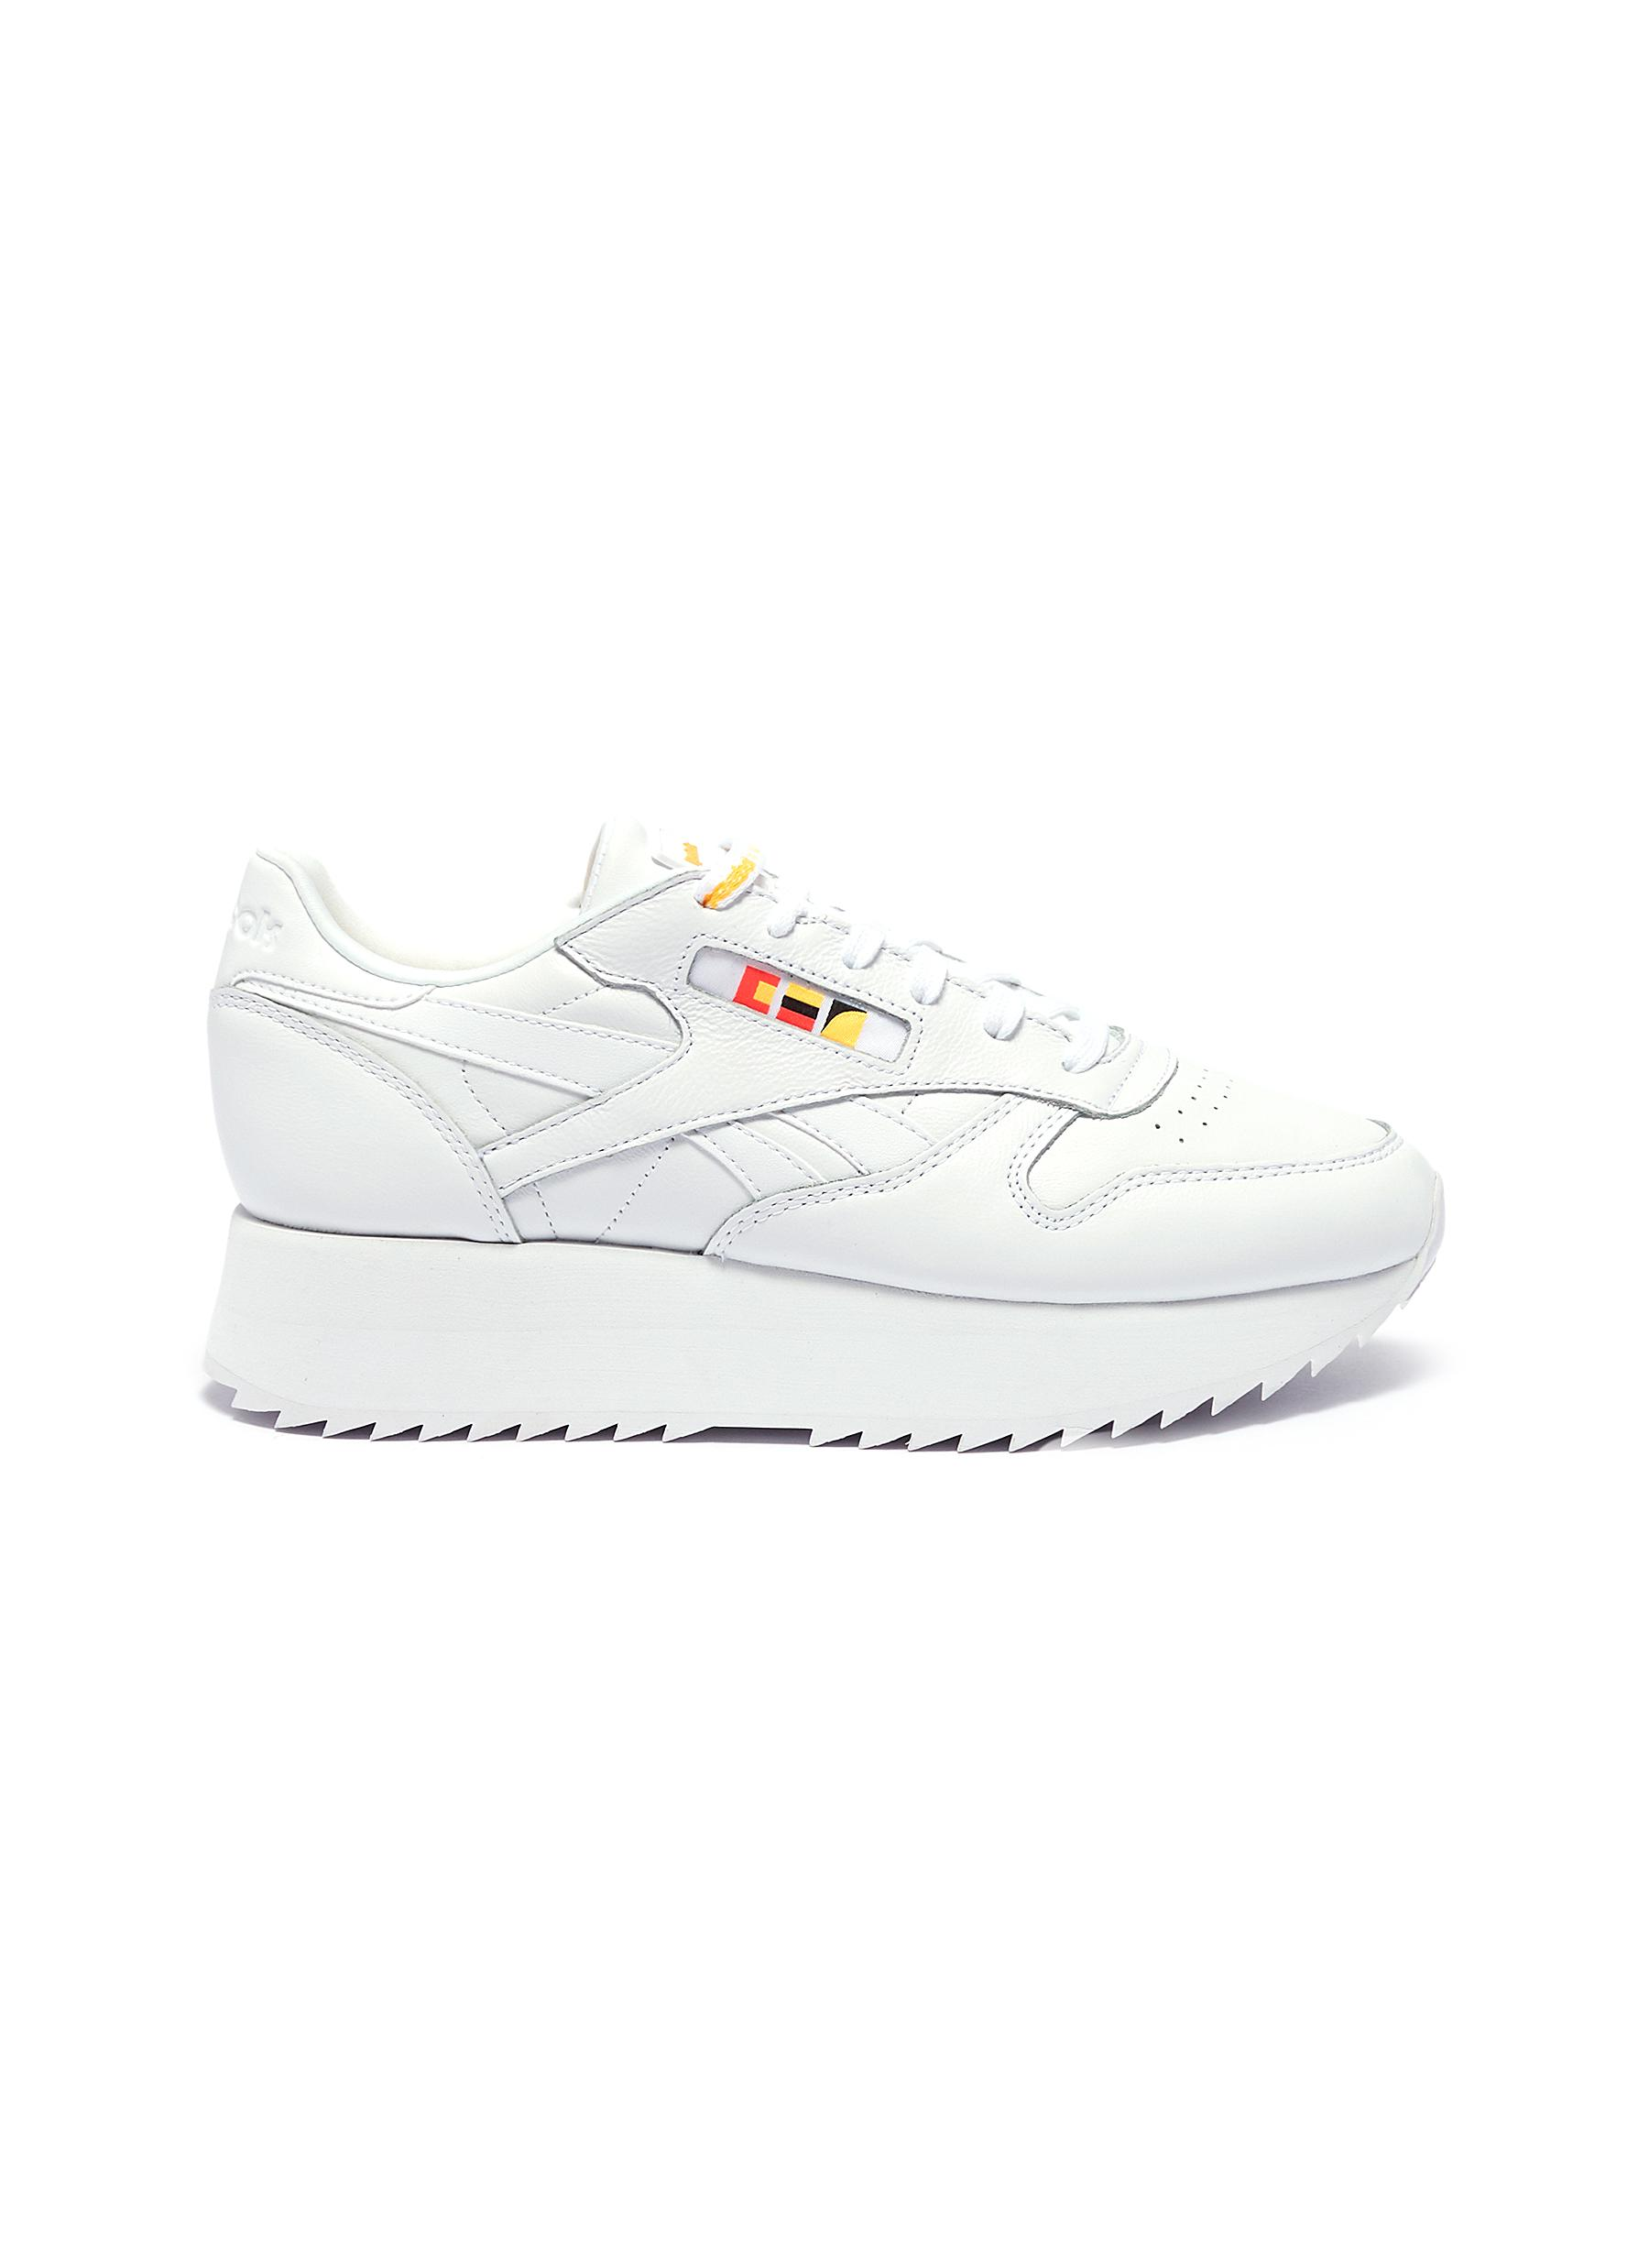 dafd192d03ab6 Reebok. x Gigi Hadid  Classic Leather Double  platform sneakers